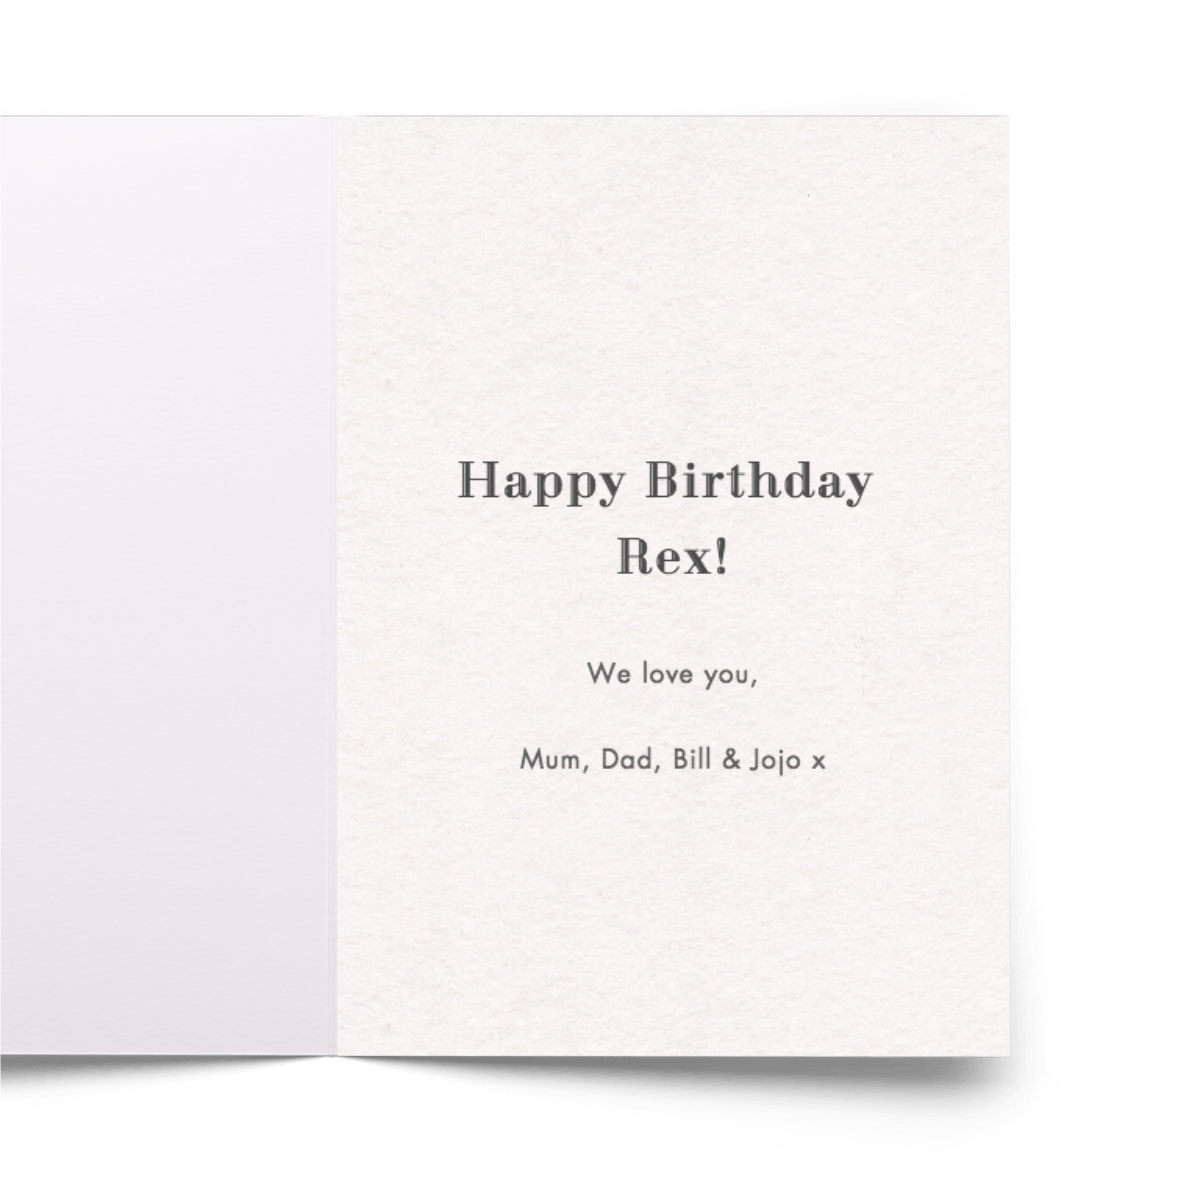 Https%3a%2f%2fwww.papier.com%2fproduct image%2f2078%2f19%2fportrait birthday 576 inside 1453910151.png?ixlib=rb 1.1